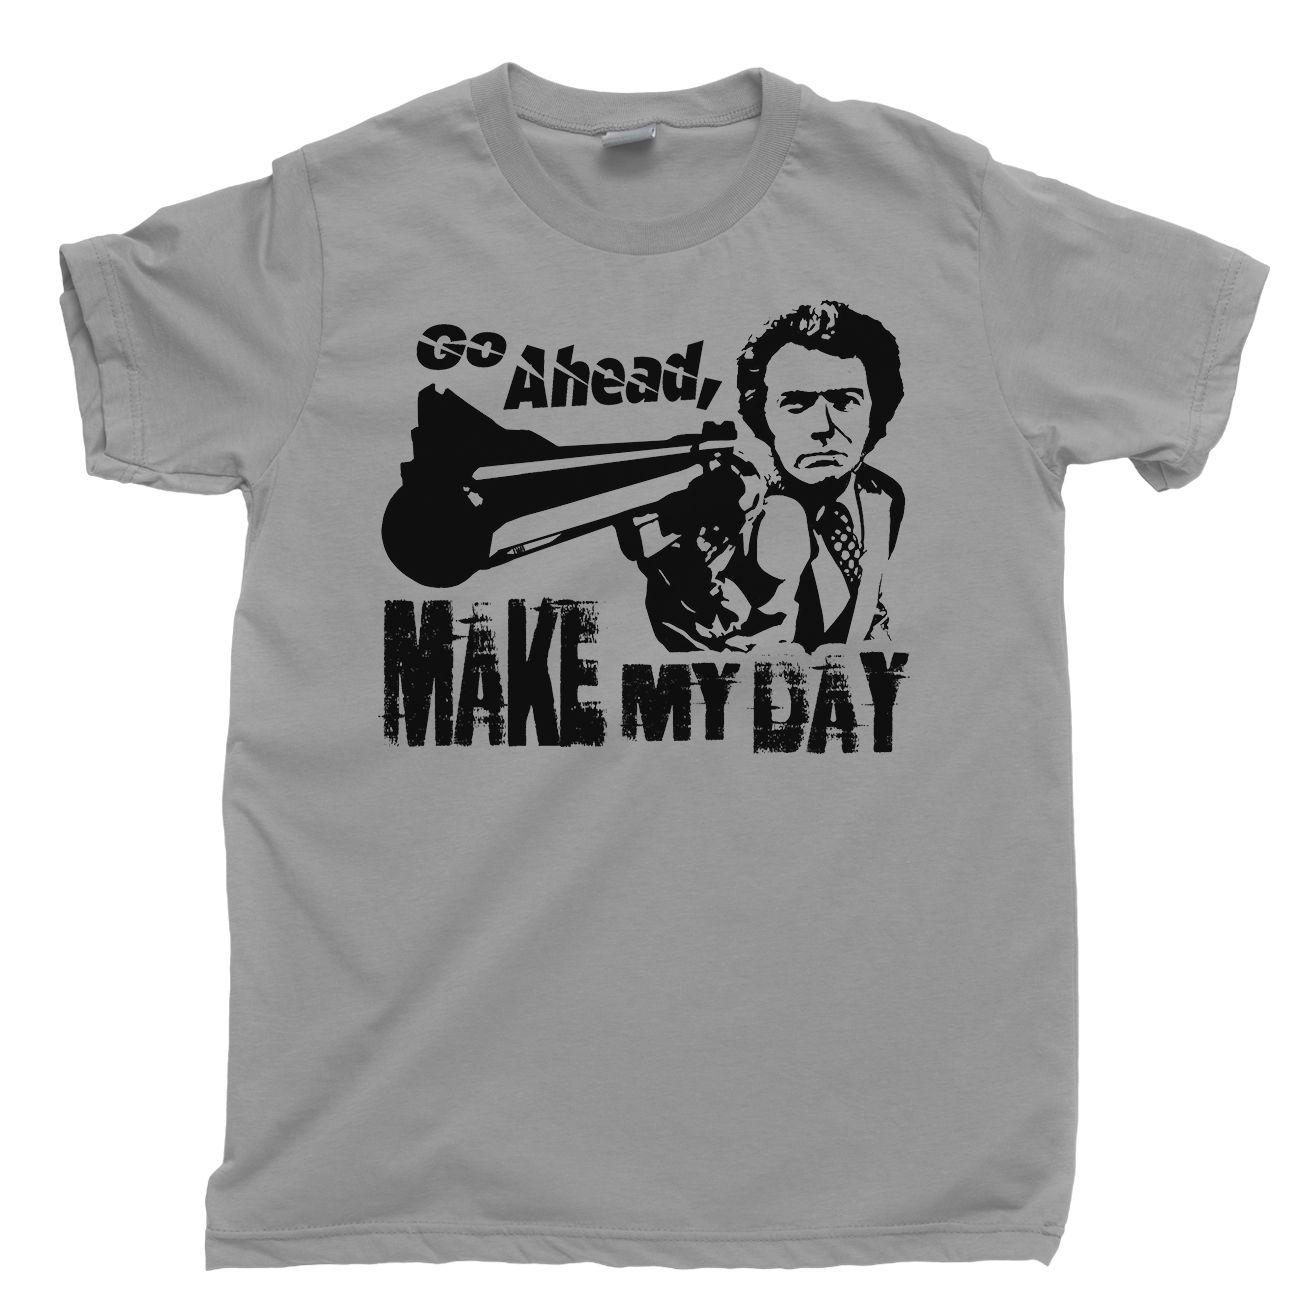 851b04e562a5c Details zu DIRTY HARRY T Shirt Make My Day Clint Eastwood Western Tee DVD  Blu Ray Box Set Funny free shipping Unisex Casual tee gift